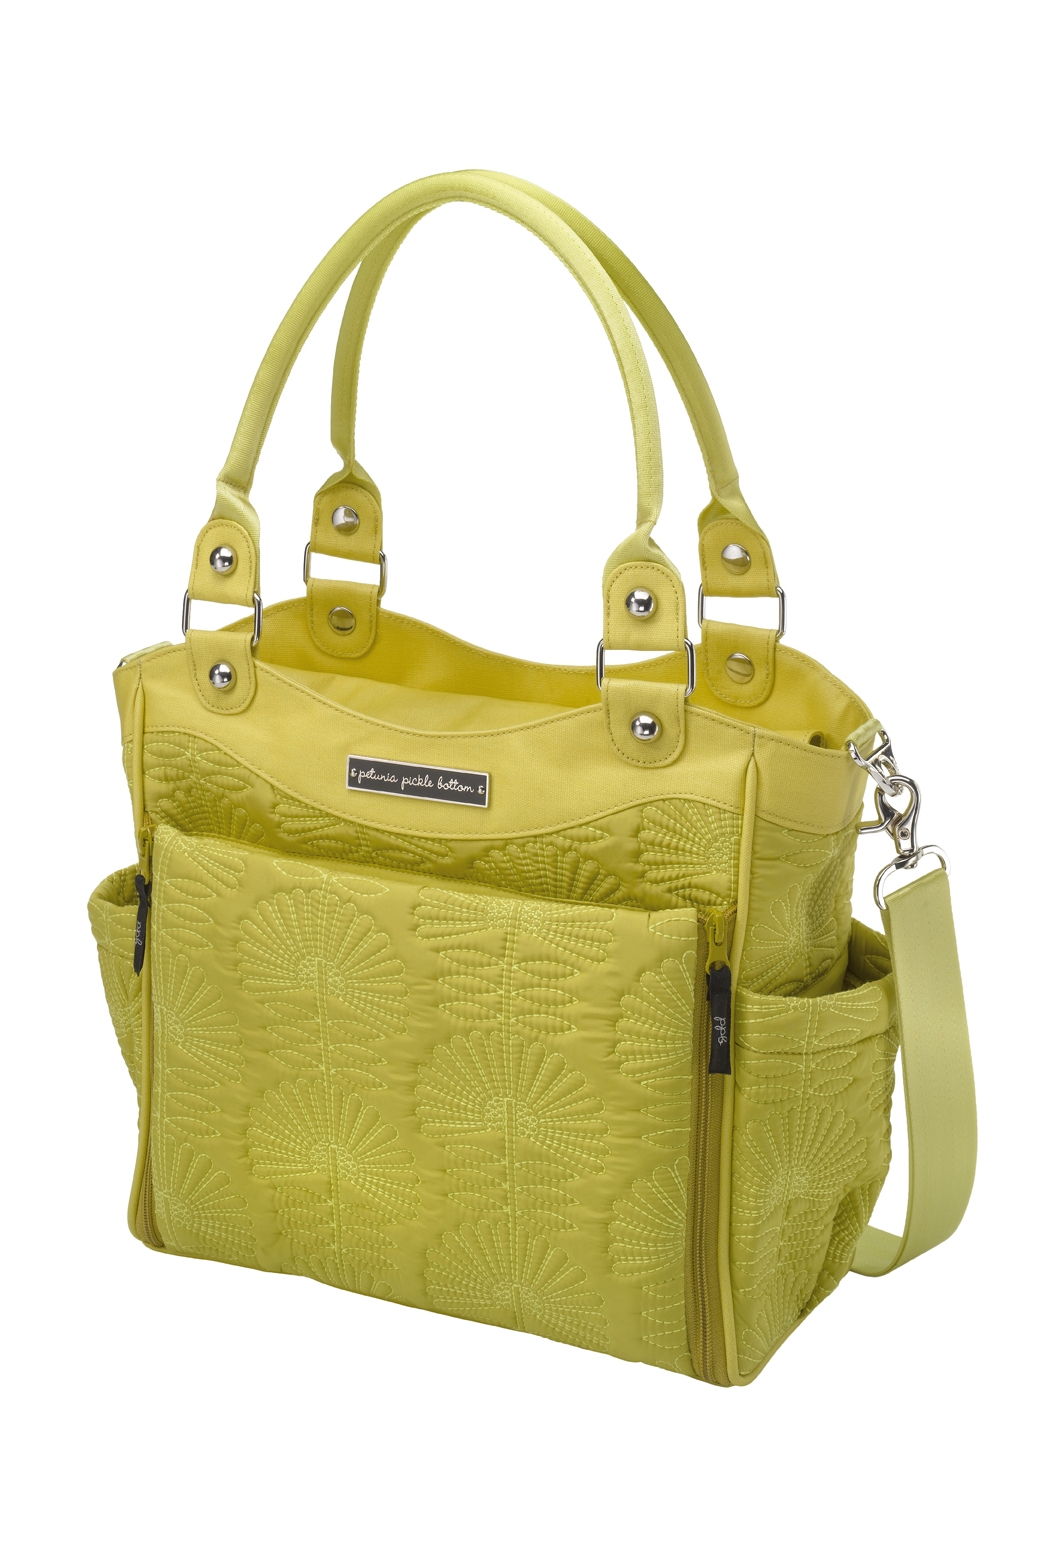 ed1ca071cd65 Сумка для мамы Petunia City Carryall: Union Square - купить cумки ...